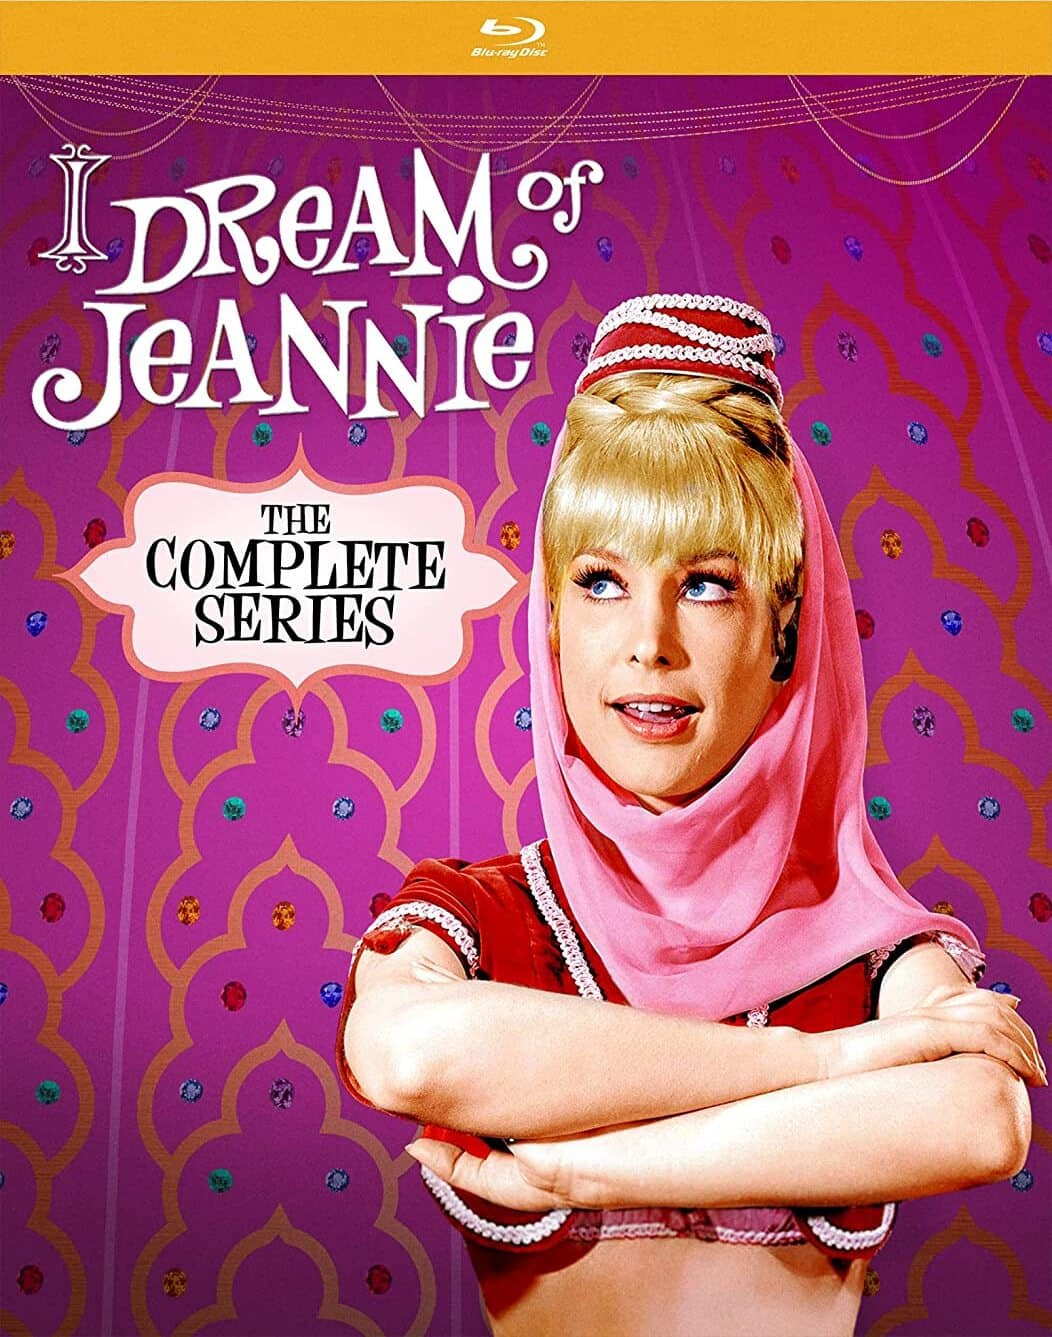 I Dream of Jeannie: The Complete Series (Blu-ray)  $44.89 + $3.99 s/h - $44.89